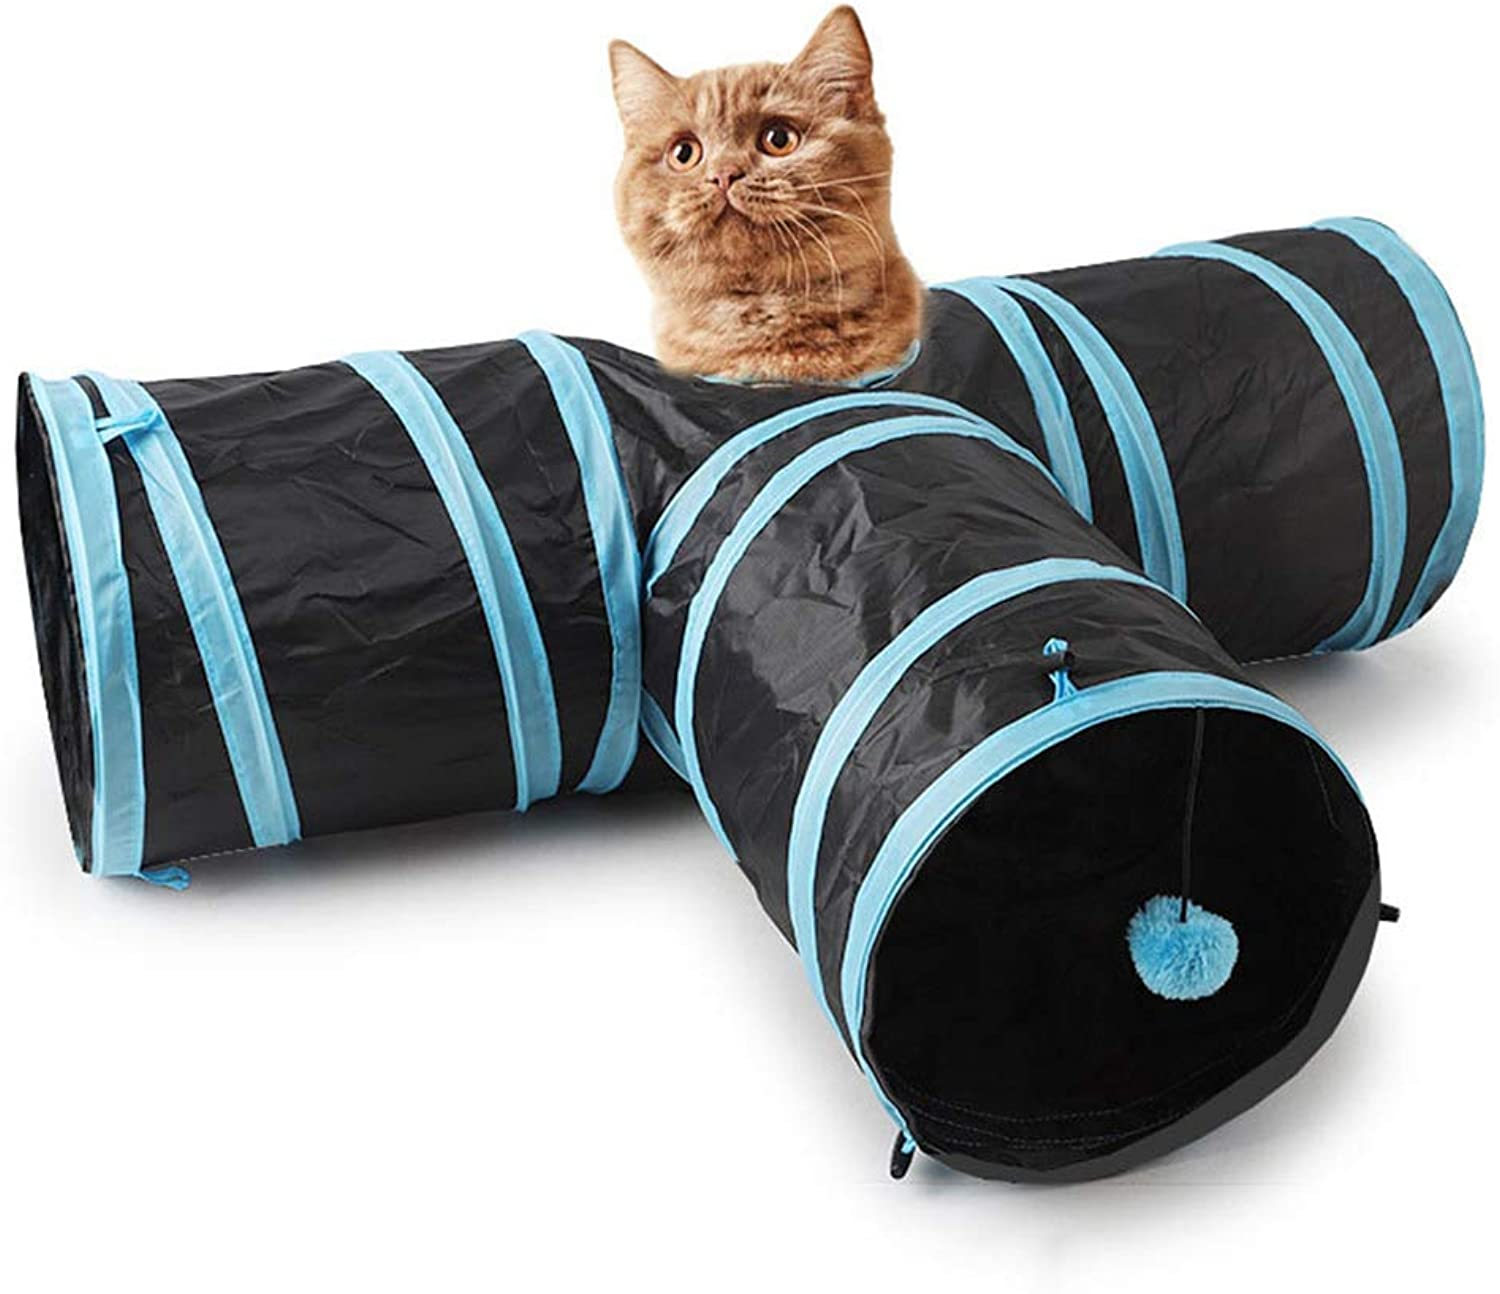 Pet Cat Tunnel  Cat Toy,Pet Exercise Play Tunnel with,Collapsible 3 Way Play Toy Kitten Indoor Outdoor Toys